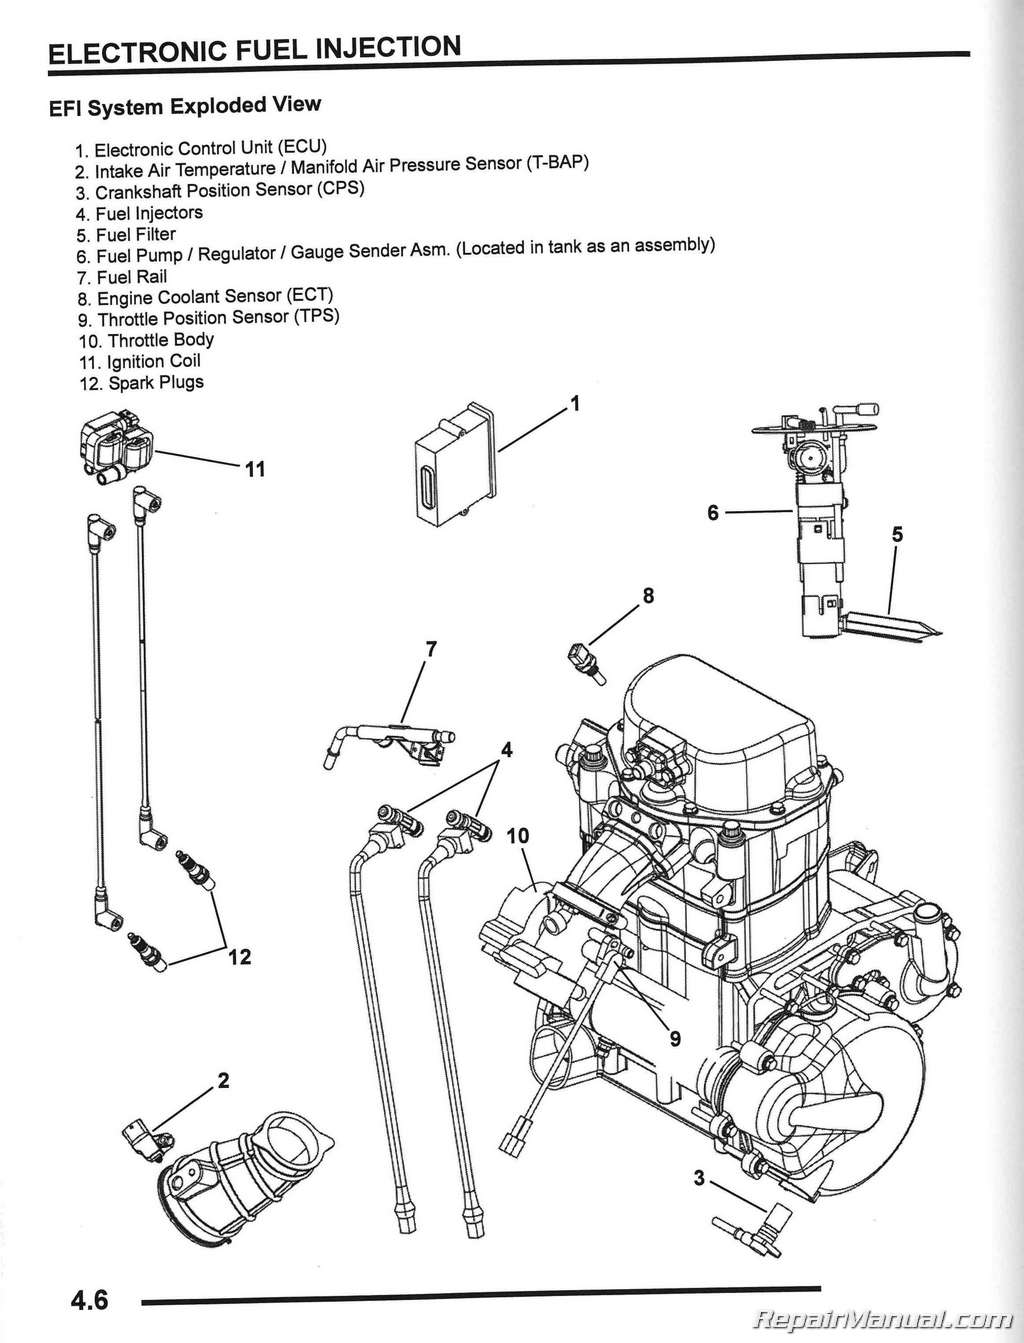 rzr parts diagram 12 2013 rzr engine diagram dat wiring diagrams  2013 rzr engine diagram dat wiring